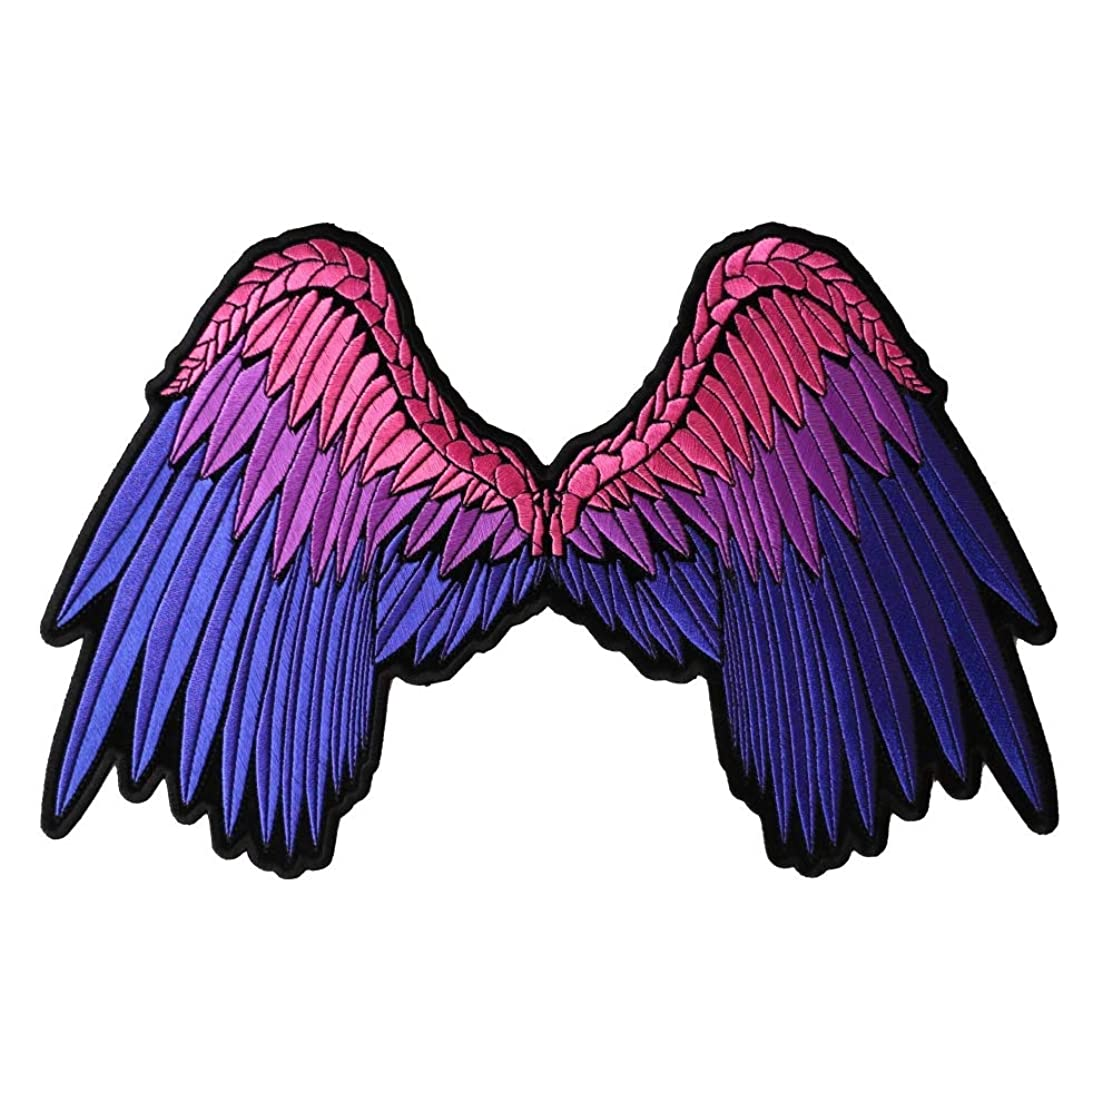 Angel Wings Beautifully Embroidered In Pink and Purple Large Back Patch - 11x7 inch. Embroidered Iron on Patch